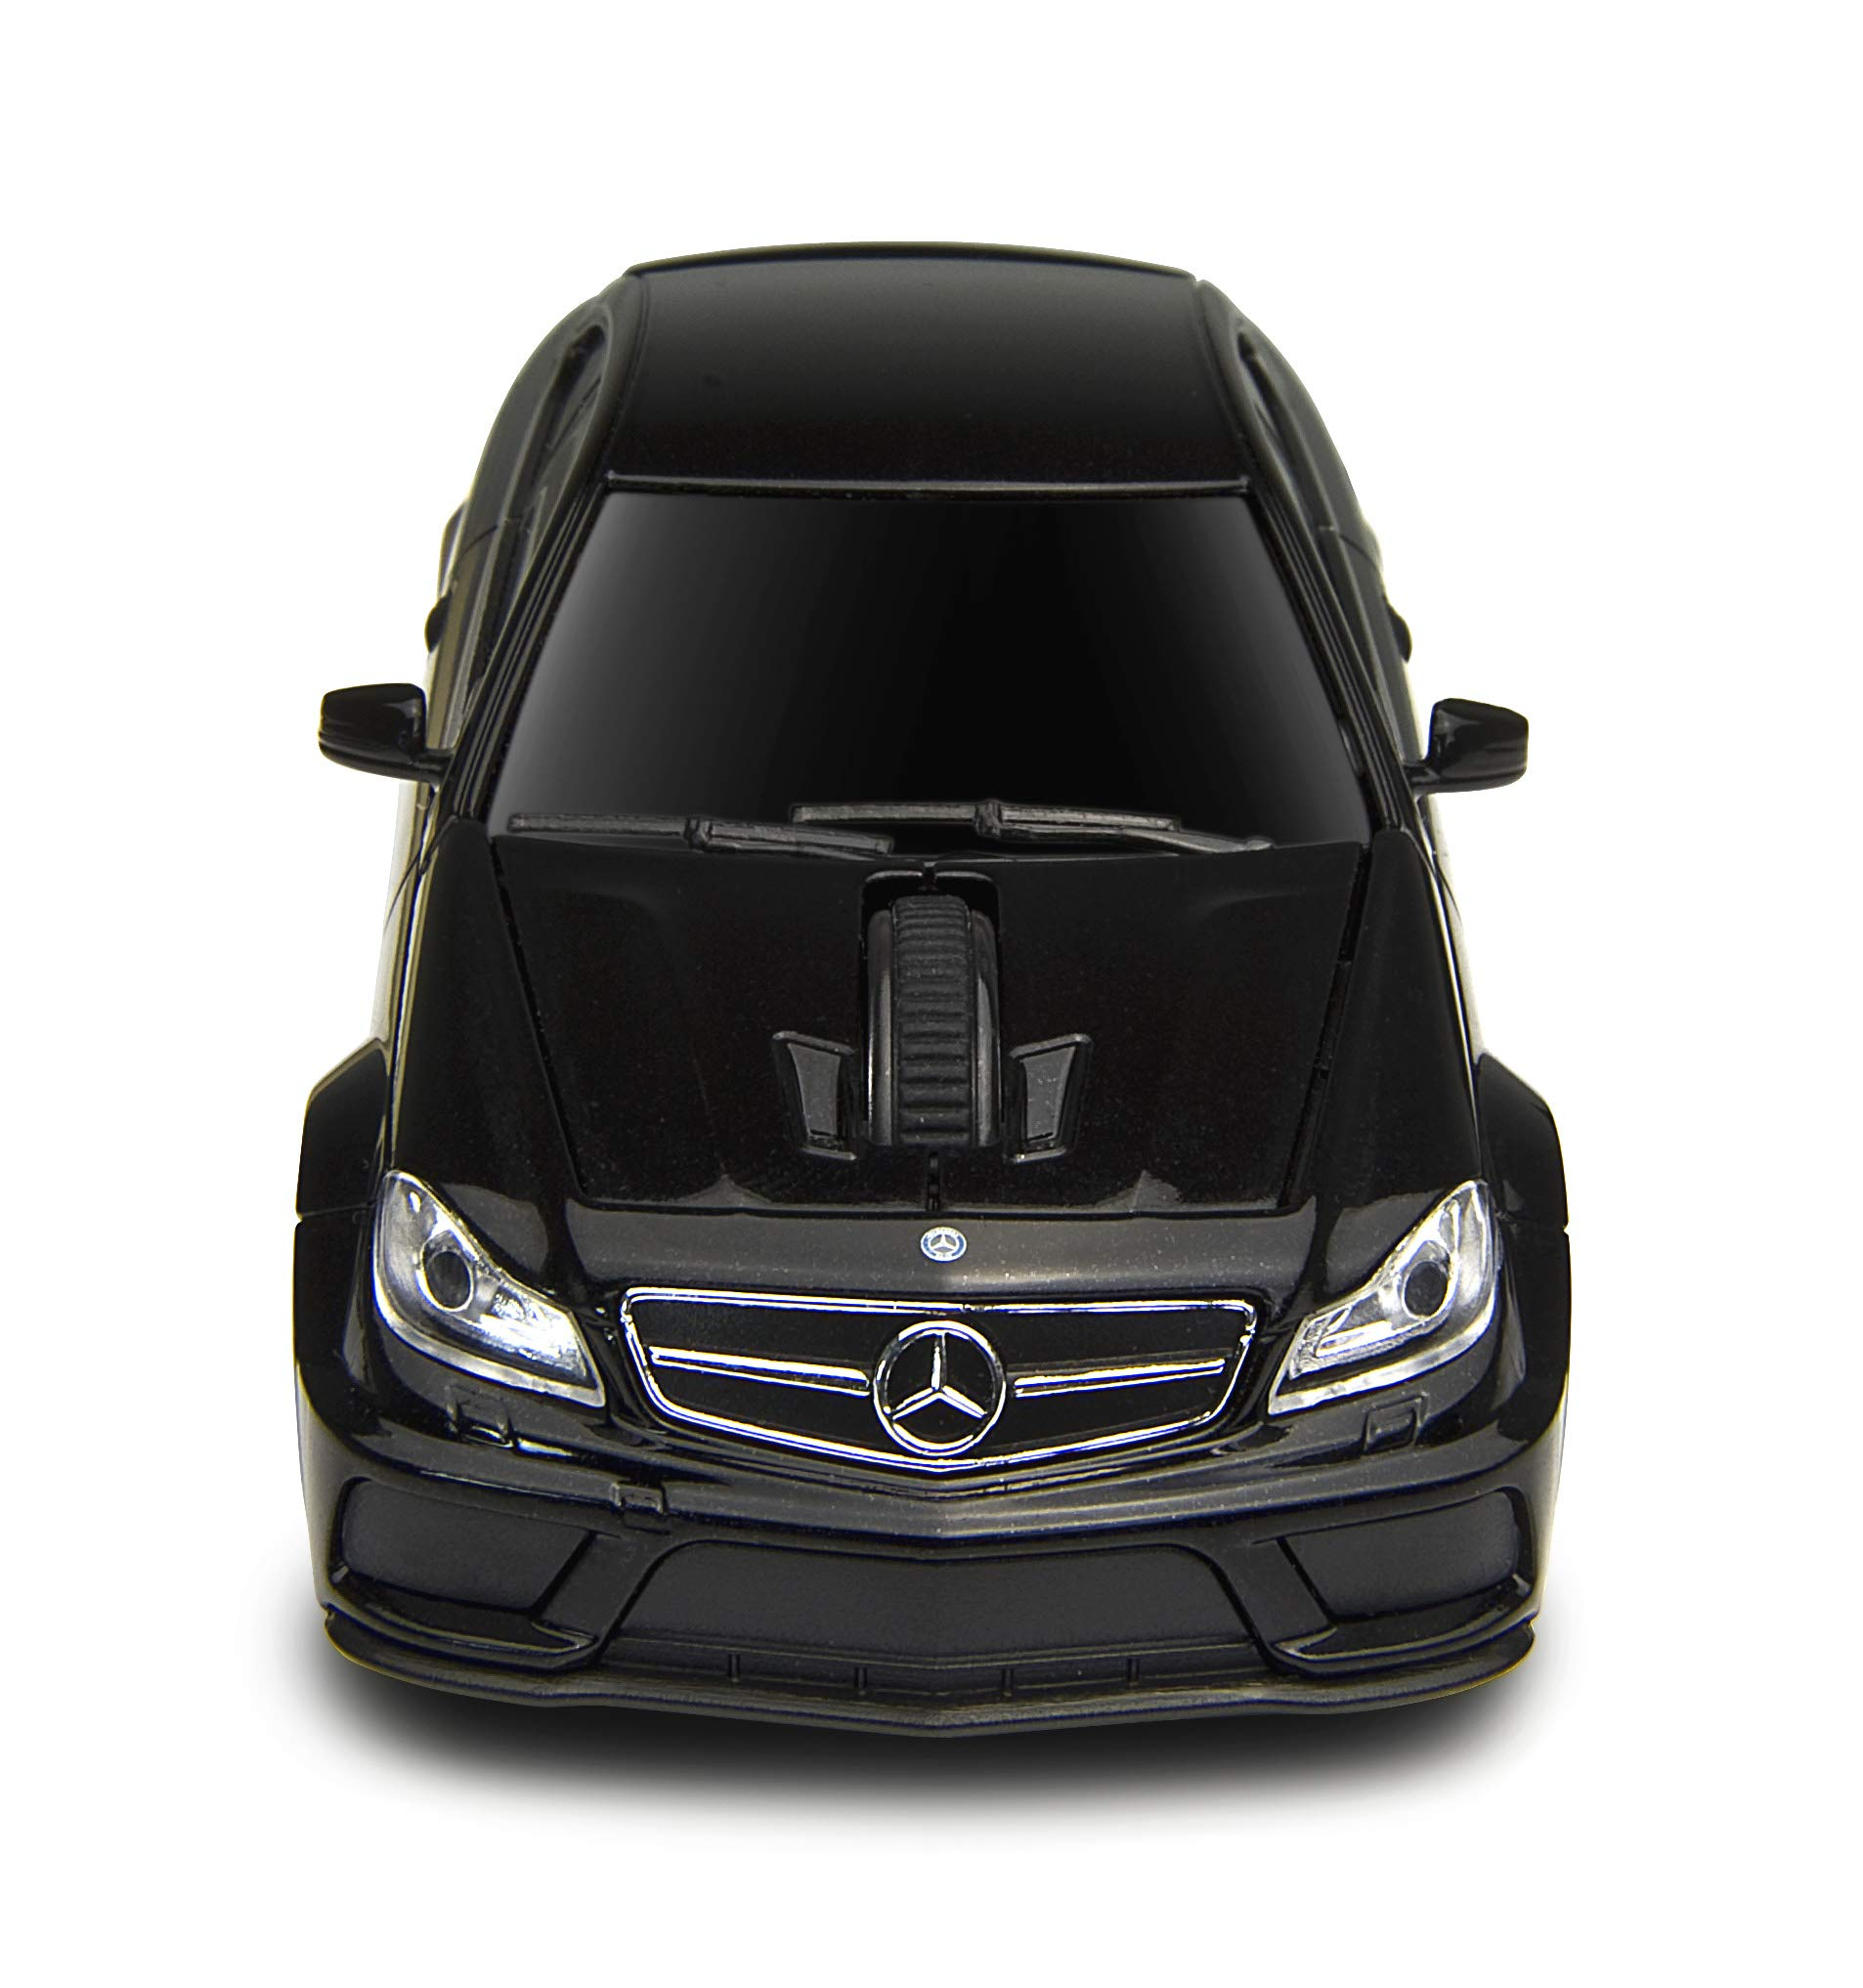 AutoMouse Mercedes-Benz C63 AMG Car Wireless Laser Computer Mouse - Black